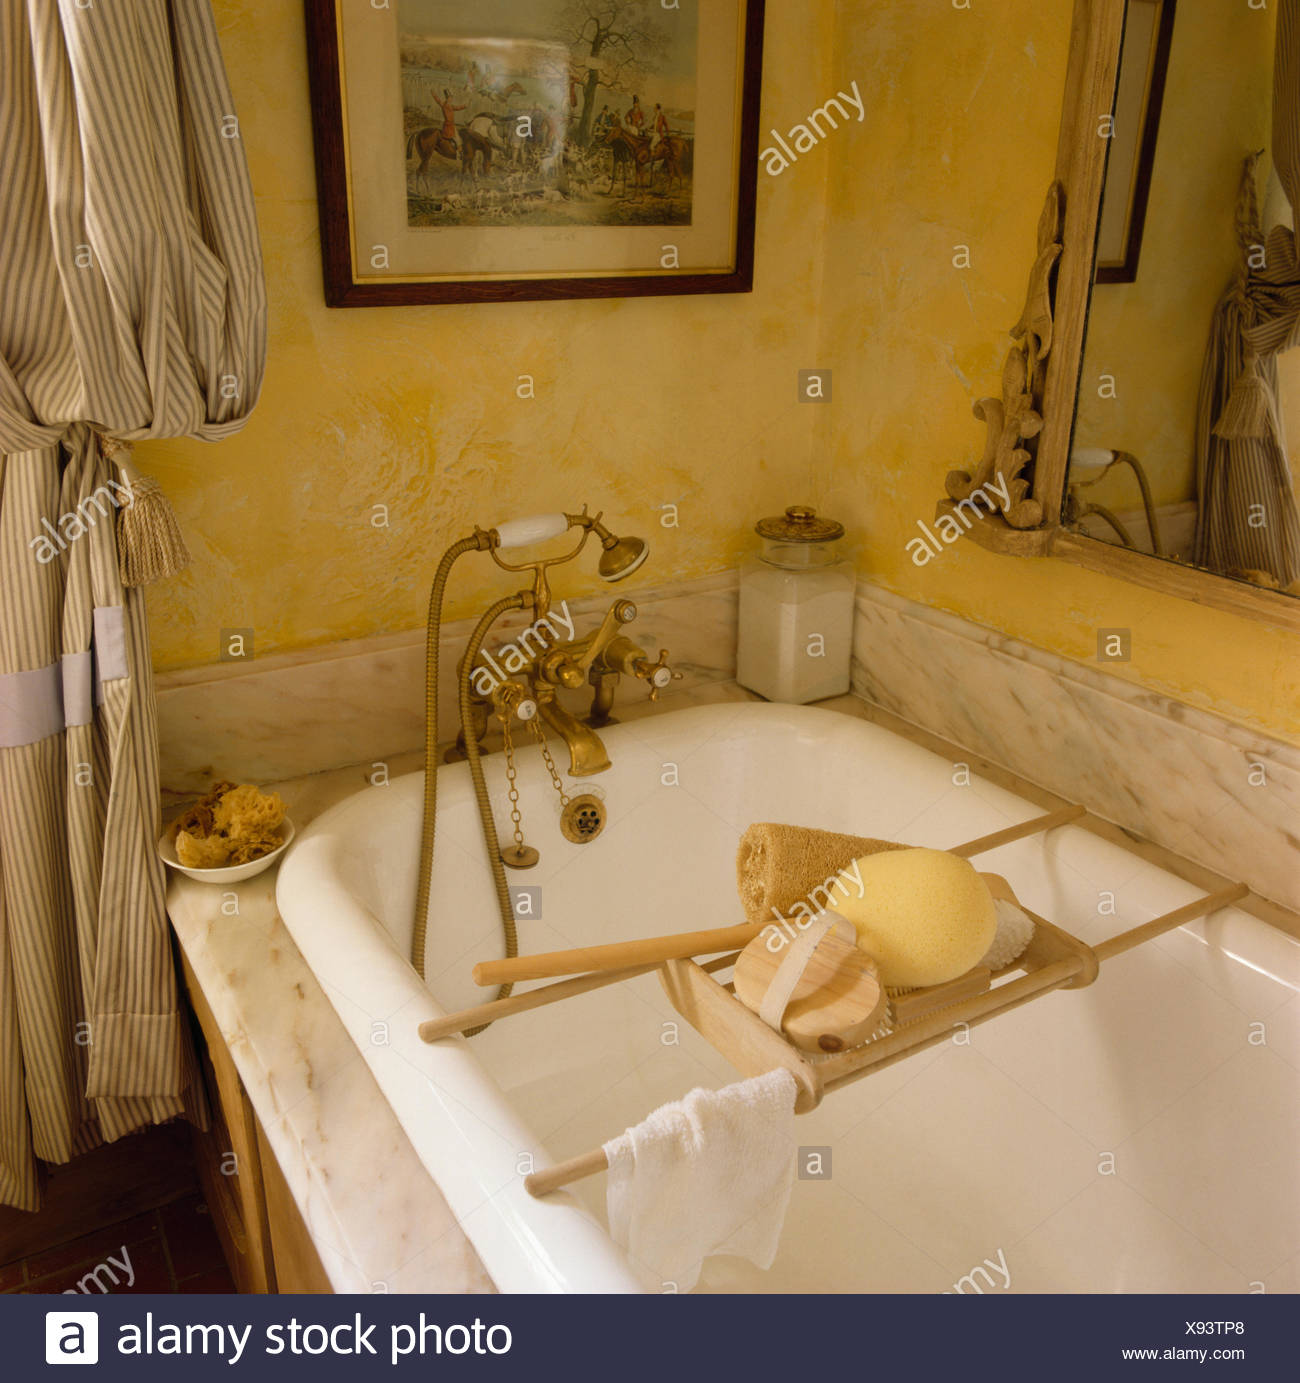 Bath With Wooden Surround Stock Photos & Bath With Wooden Surround ...